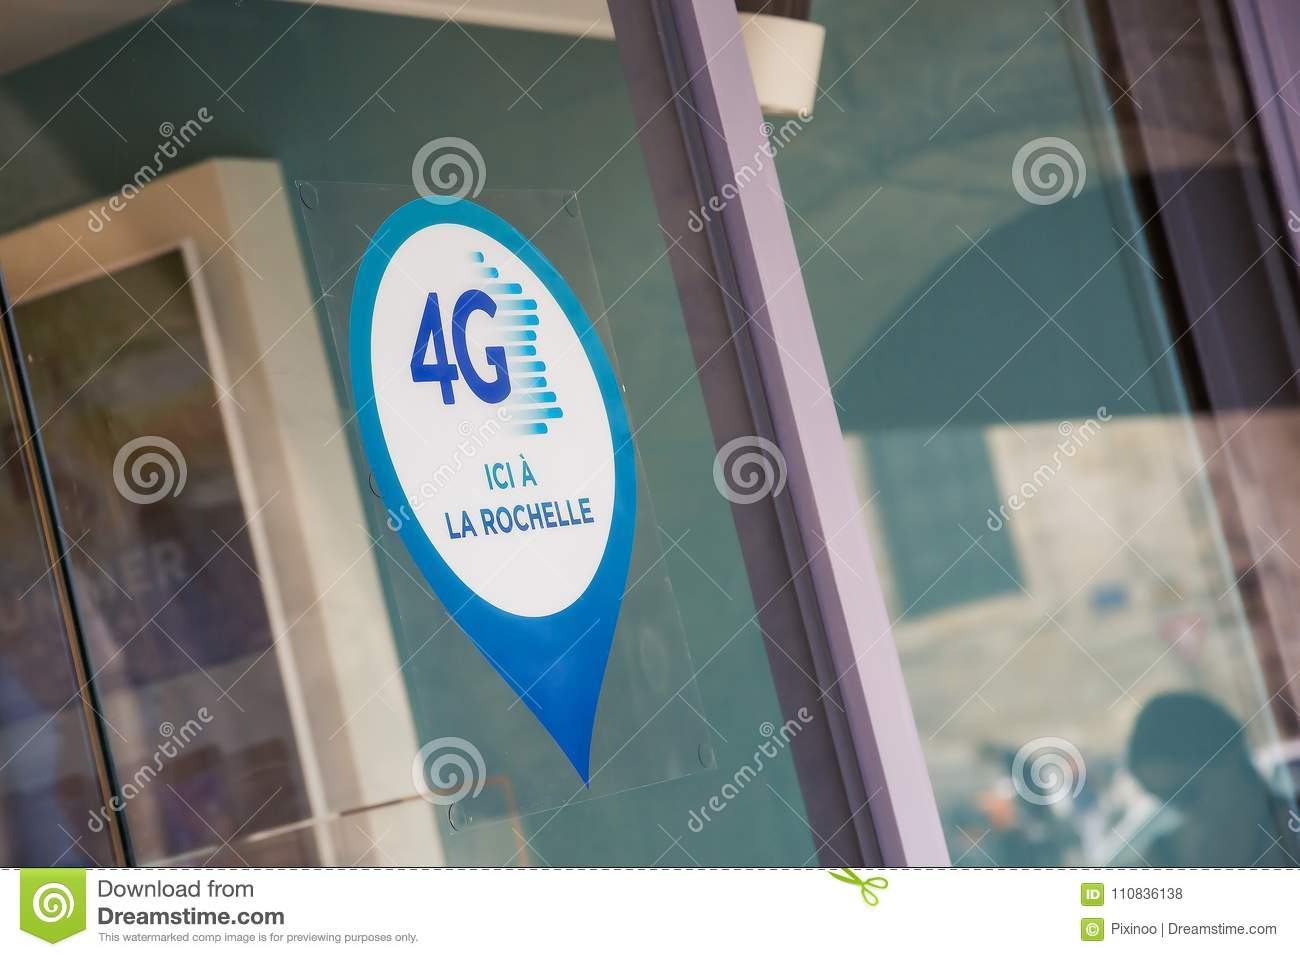 Ici Store A Sign Signaling A 4g Network Is Available Here On A Store